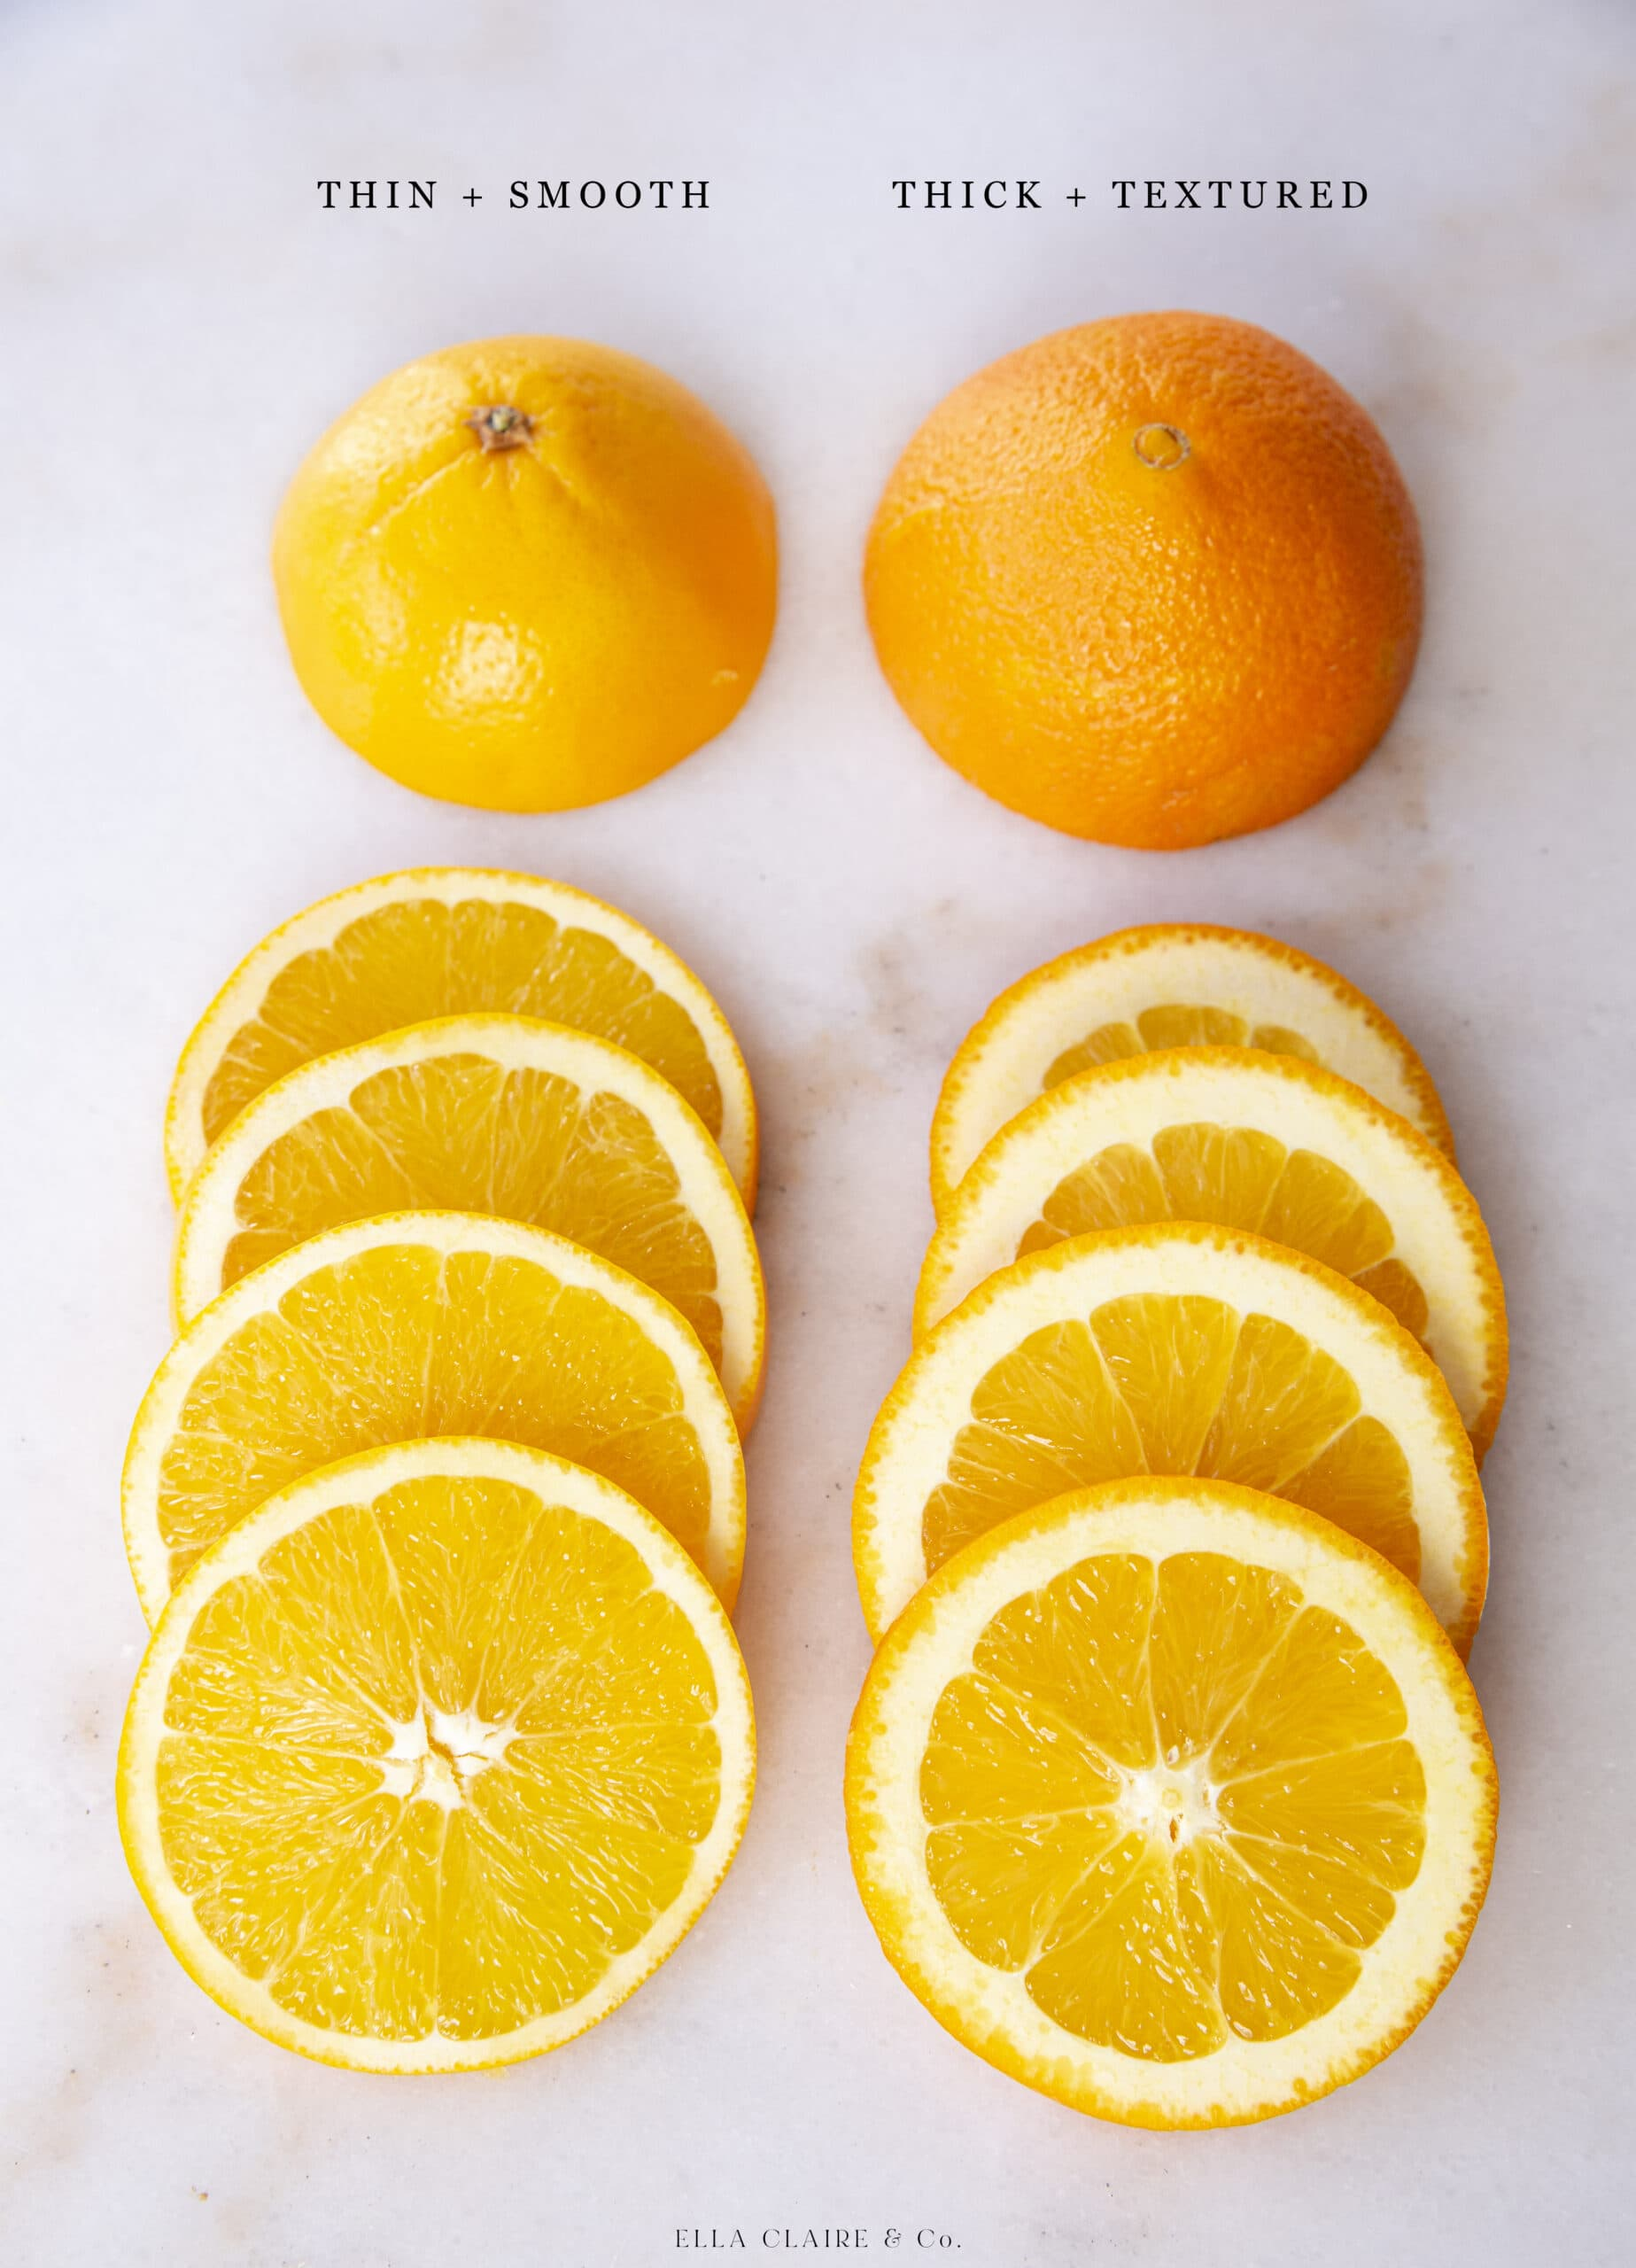 difference in types of oranges in slices